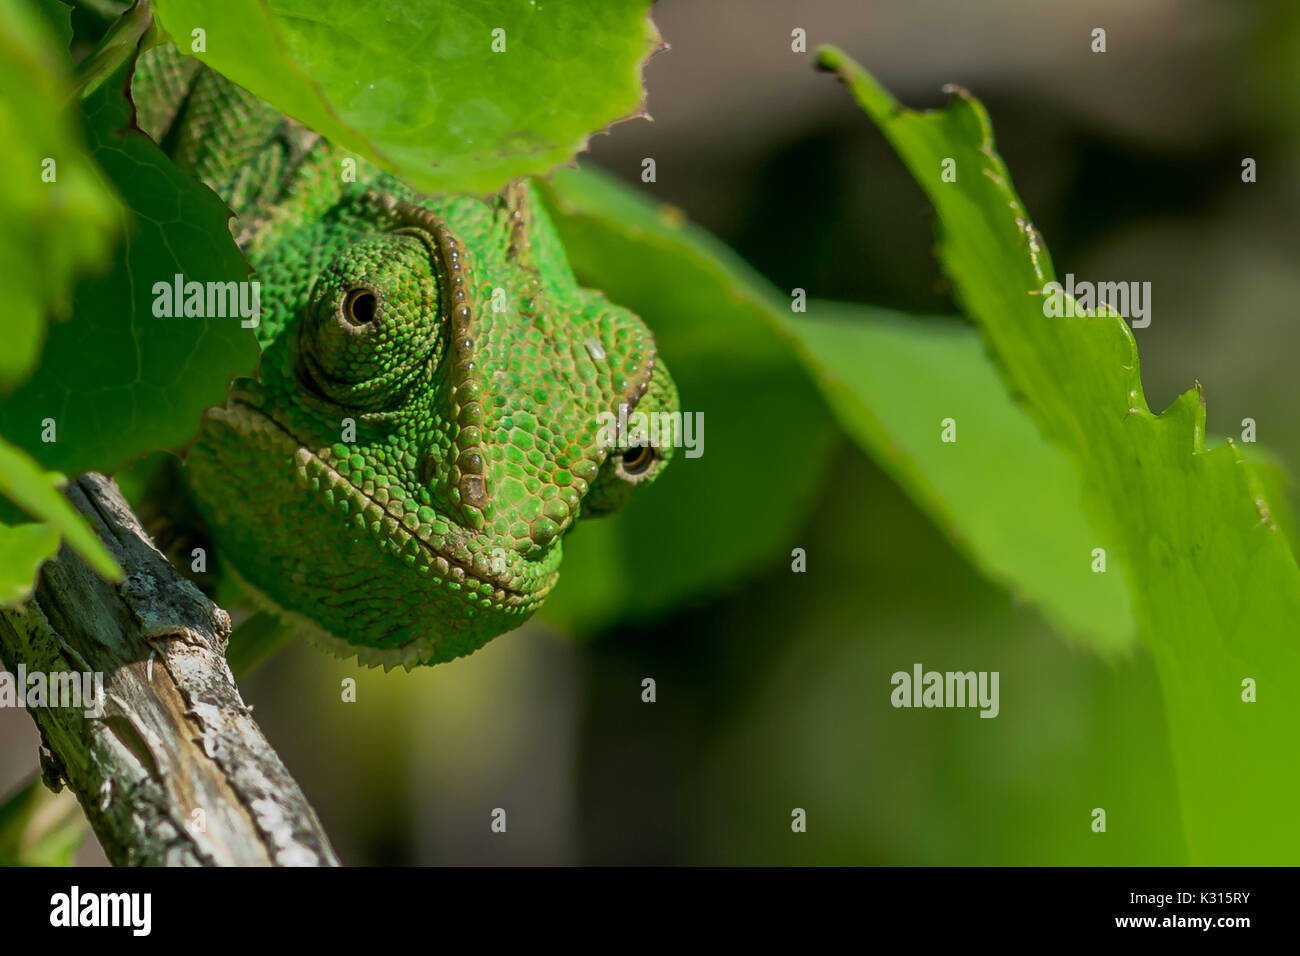 A well camouflaged Mediterranean Chameleon (Chamaeleo chamaeleon) peeking from behind some leaves. Malta - Stock Image